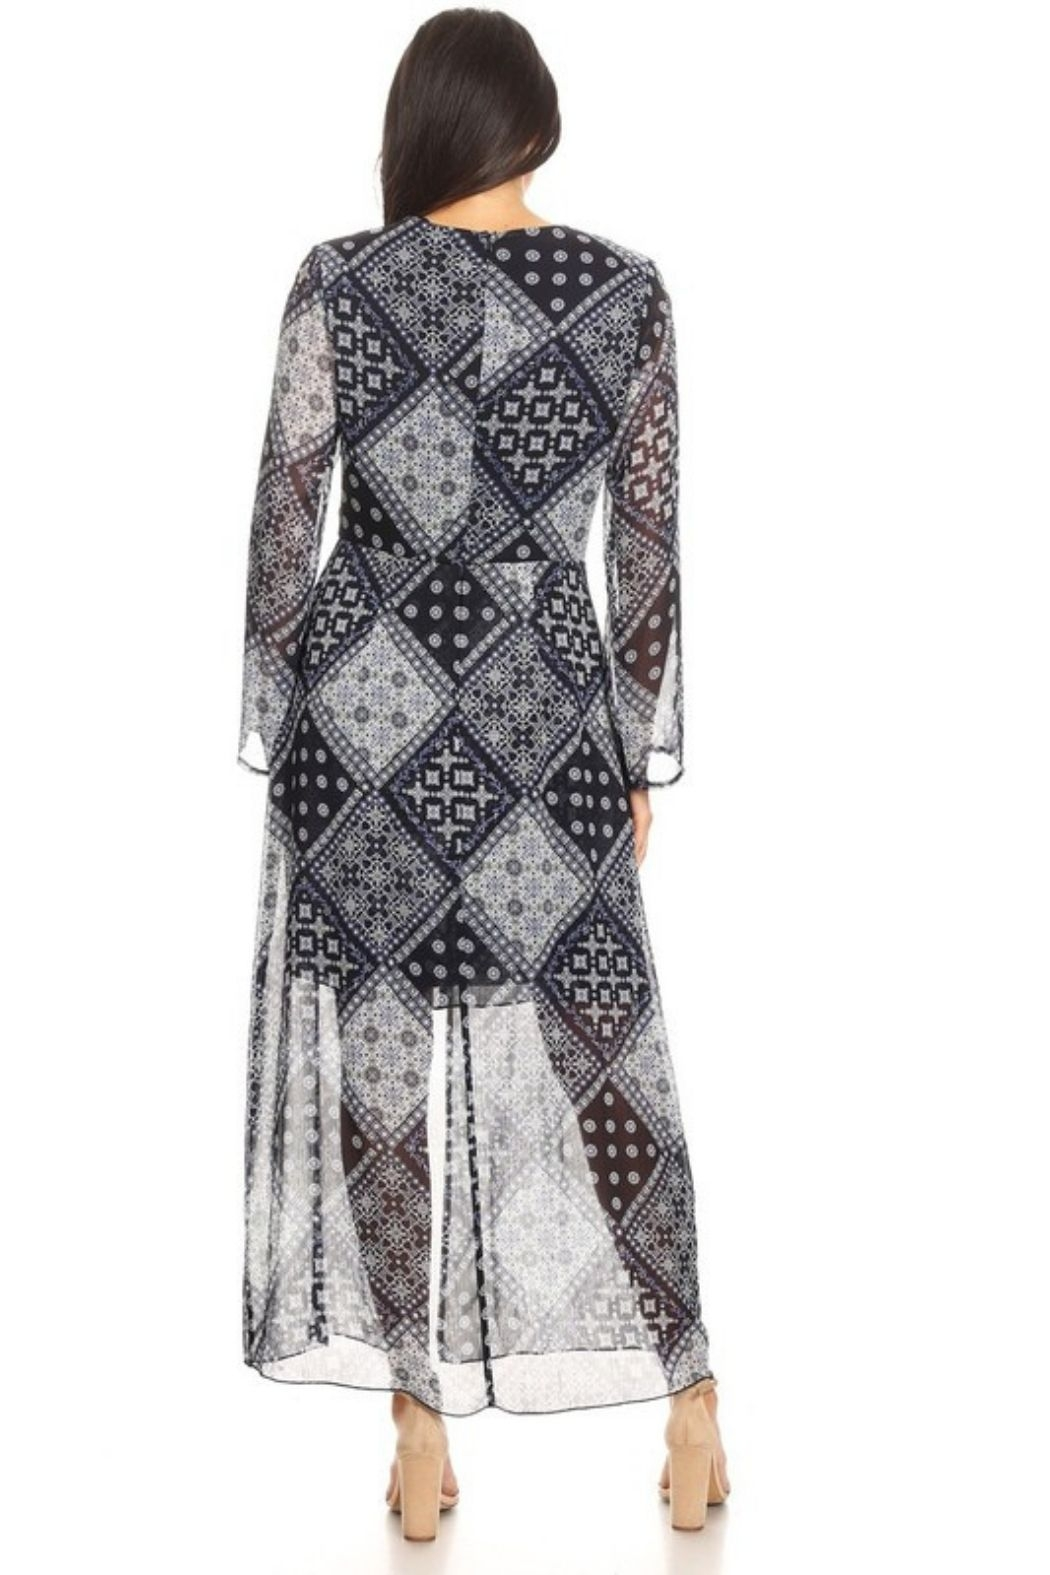 NMC Paisley Print Long Sleeve Maxi Dress - Front Full Image